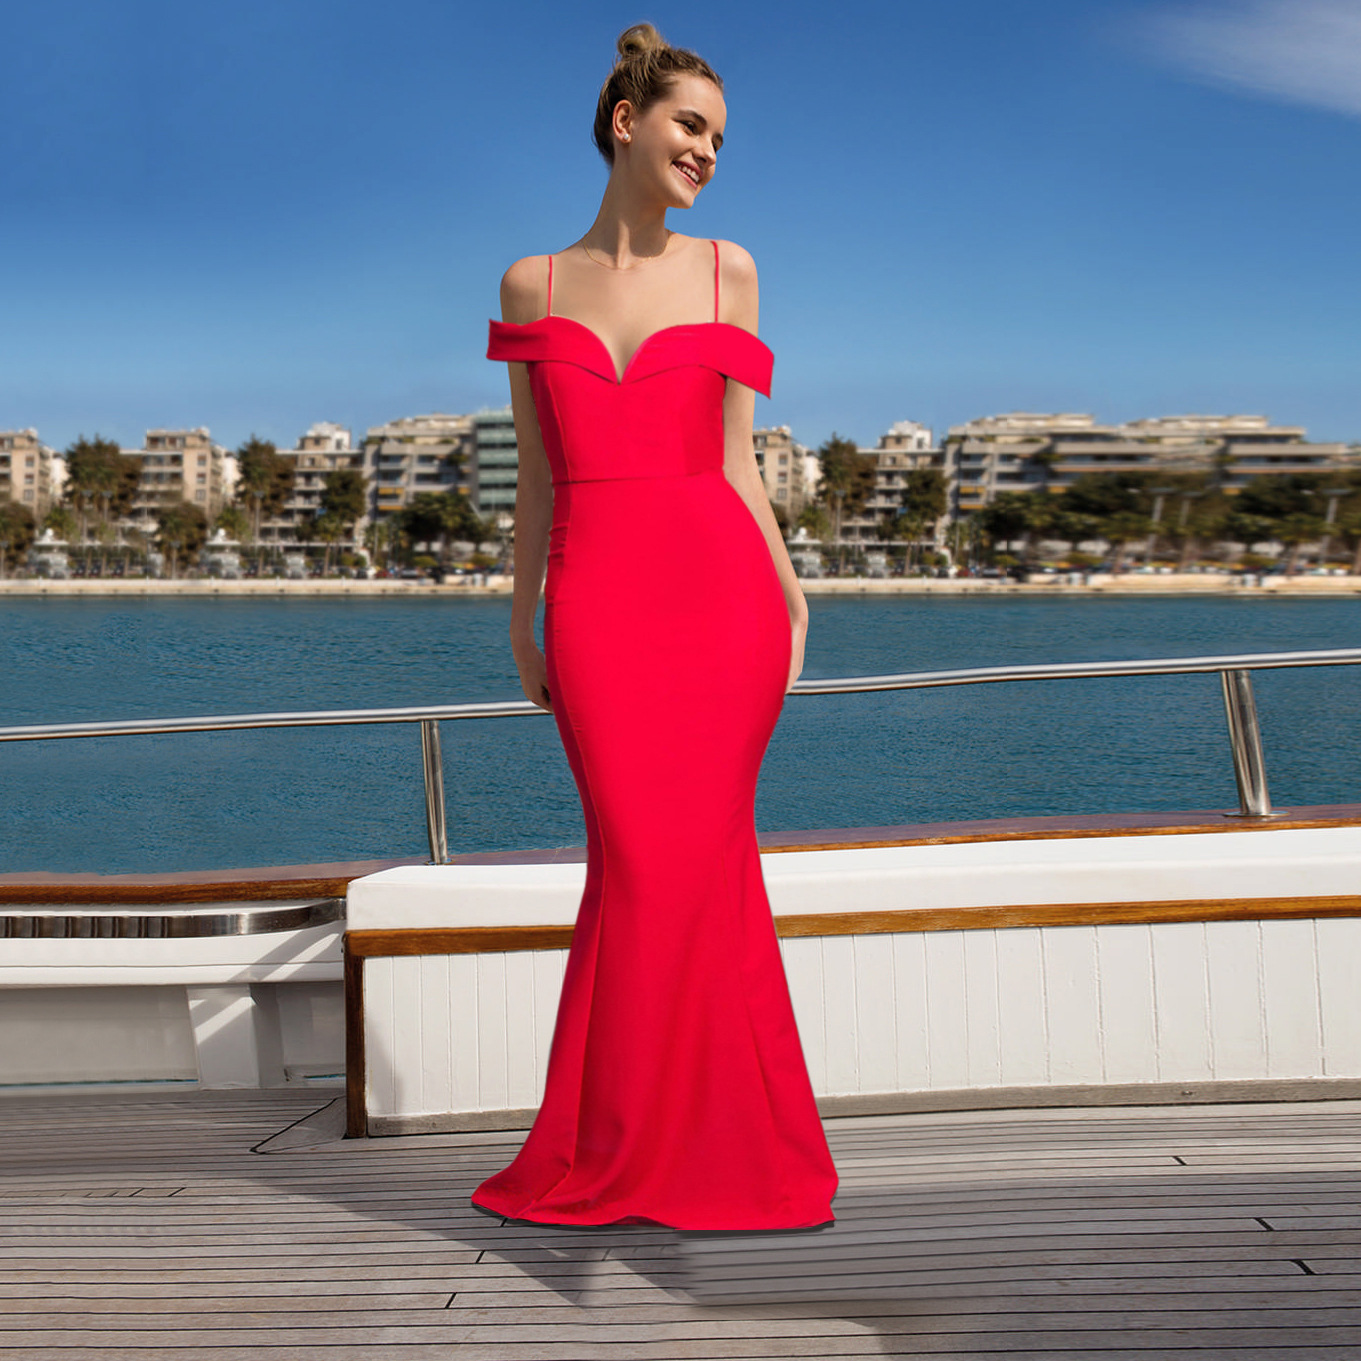 Spaghetti Strap Mermaid Long Red Dress for Evening Party Elegant Slim Bodyon Floor Length Bride Dresses Vintage Women Dress